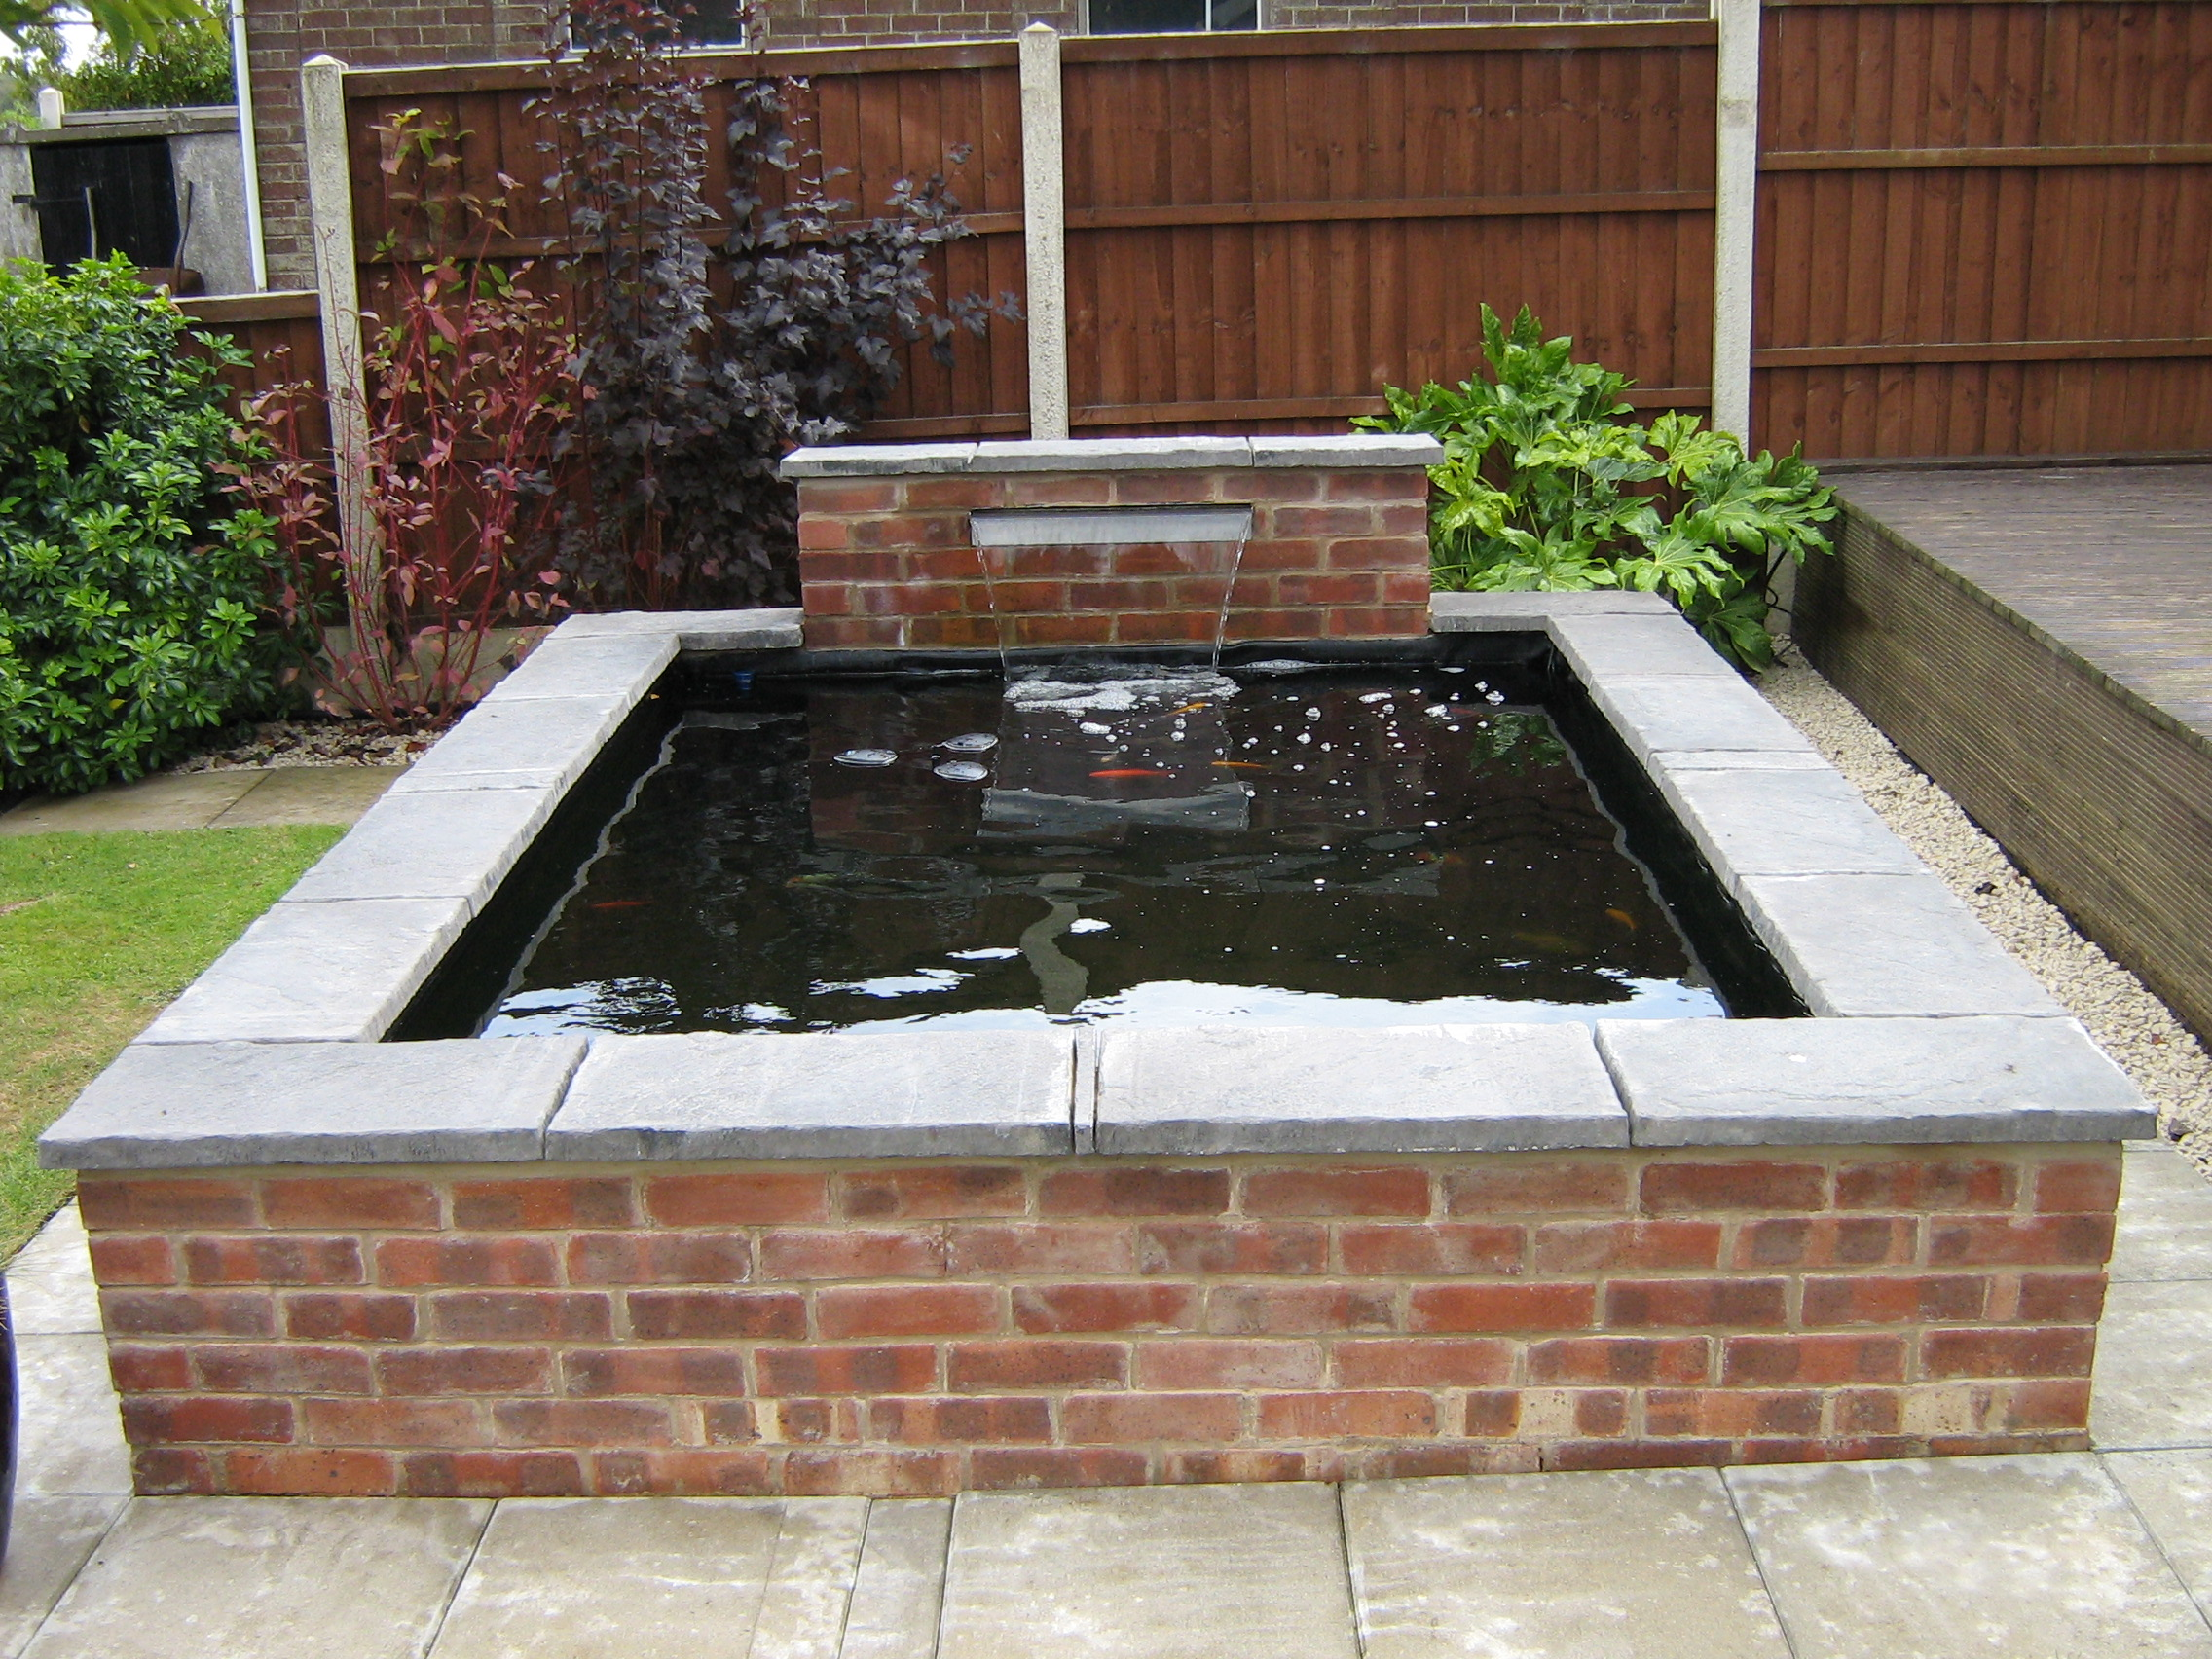 Case studies aquatic care all aspects of aquarium and for Concrete garden pond